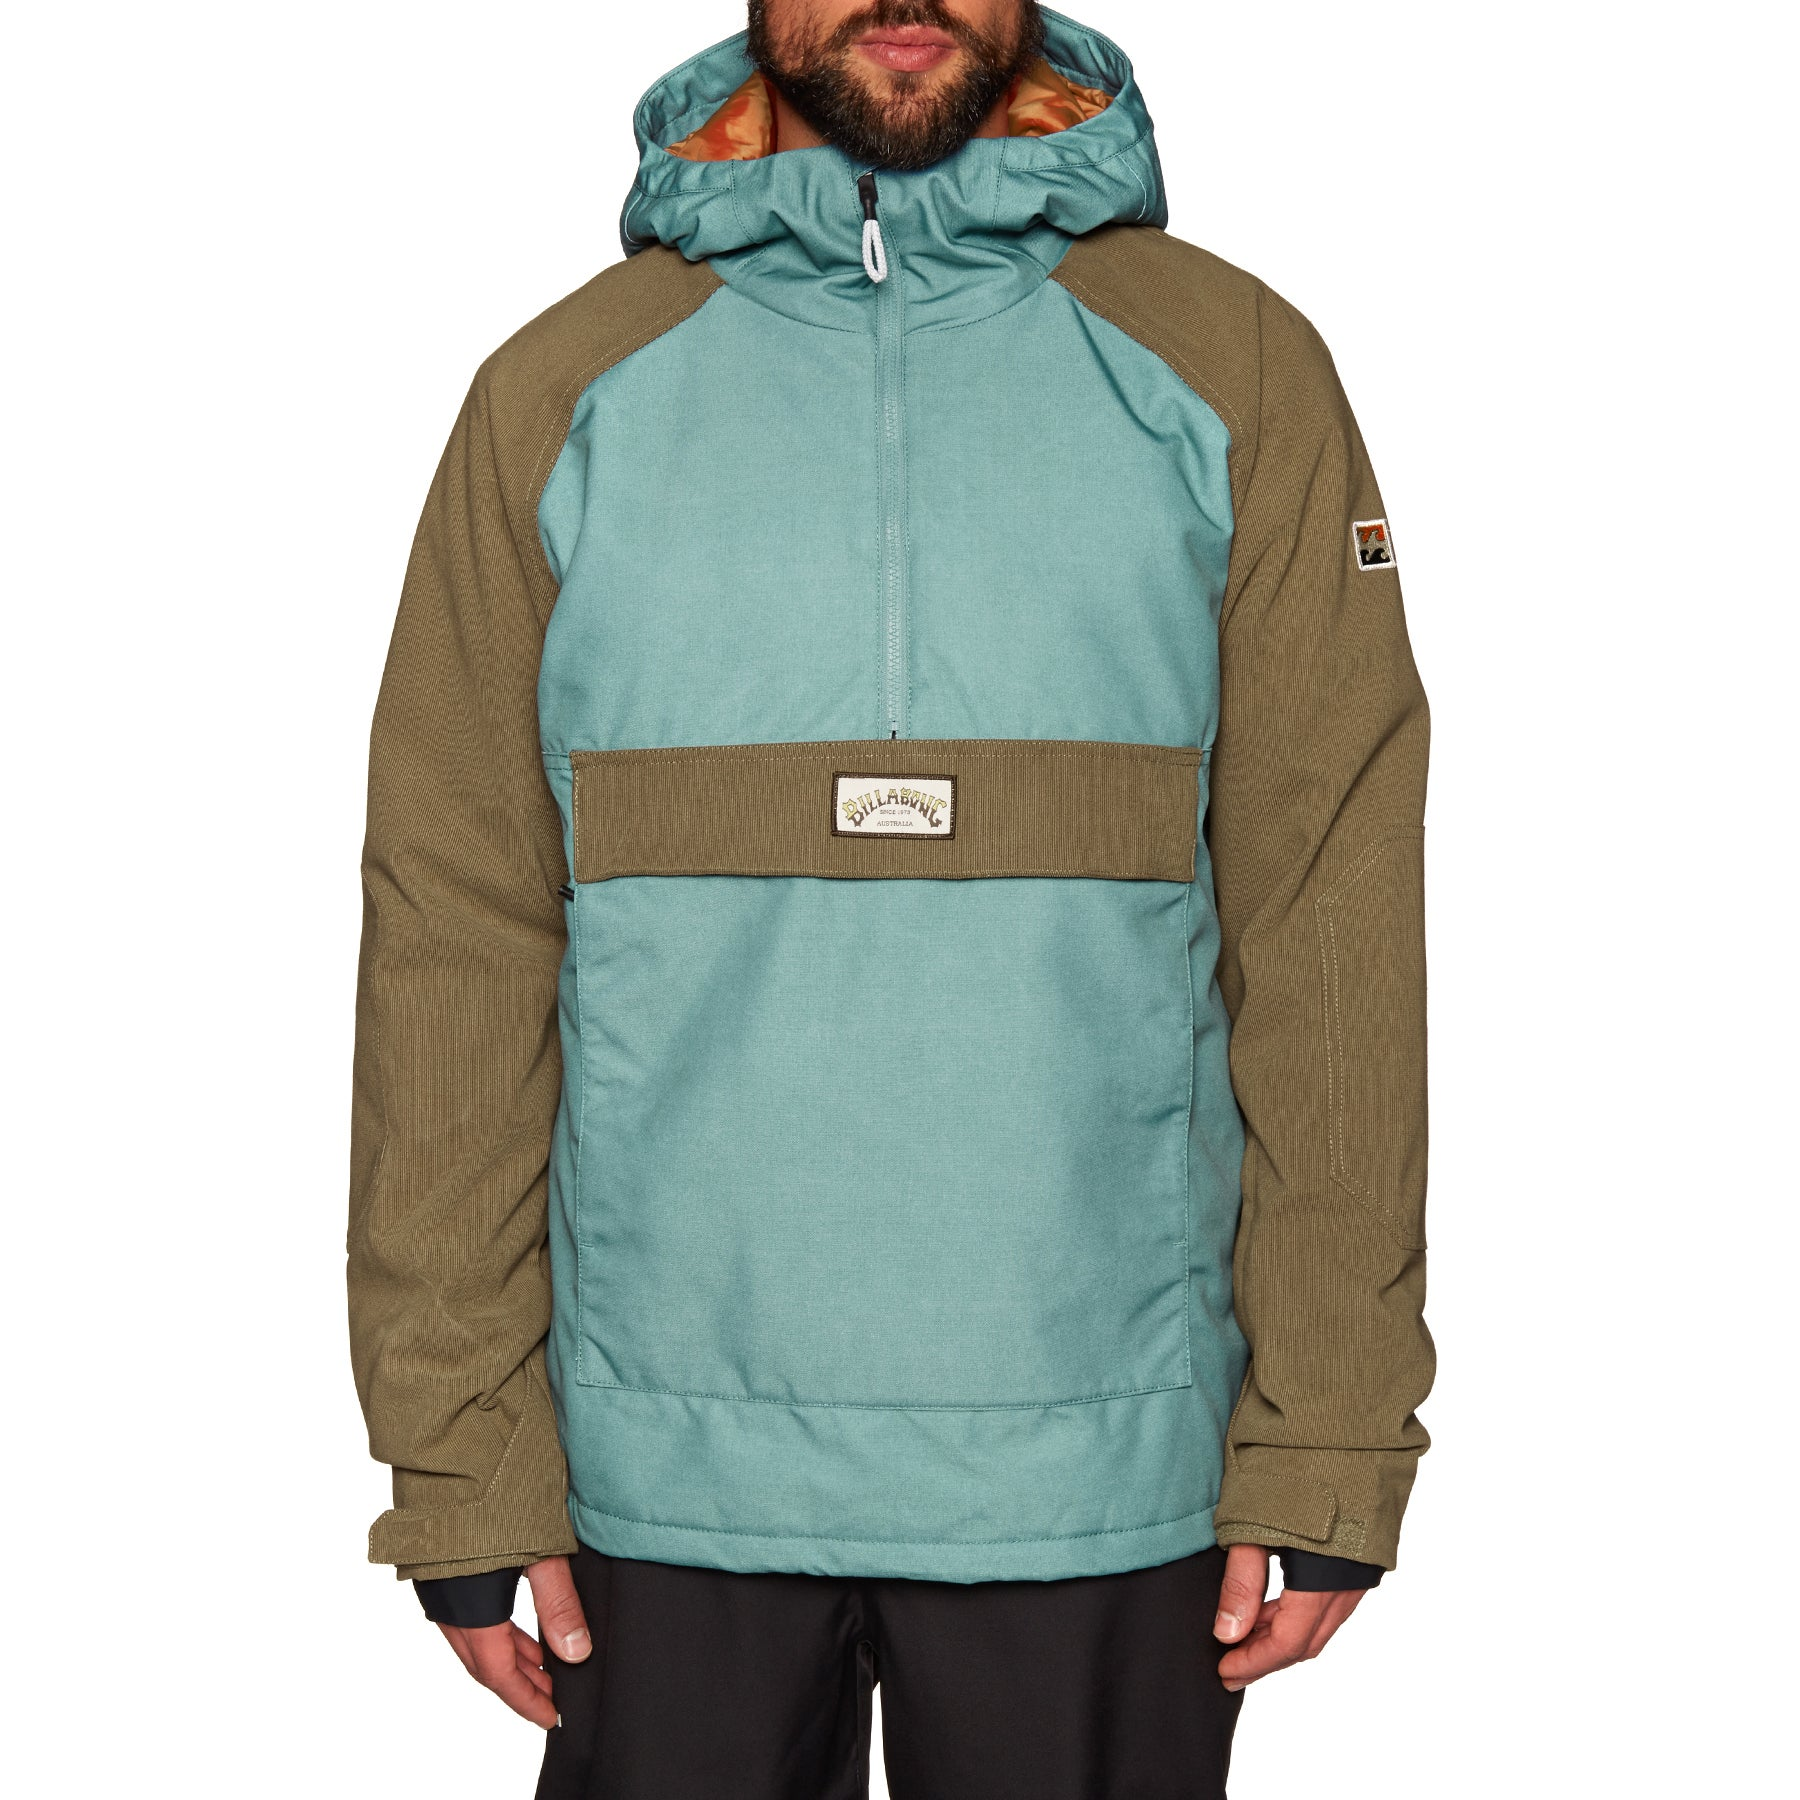 Billabong Stalefish Anorak Snow Jacket - Arctic